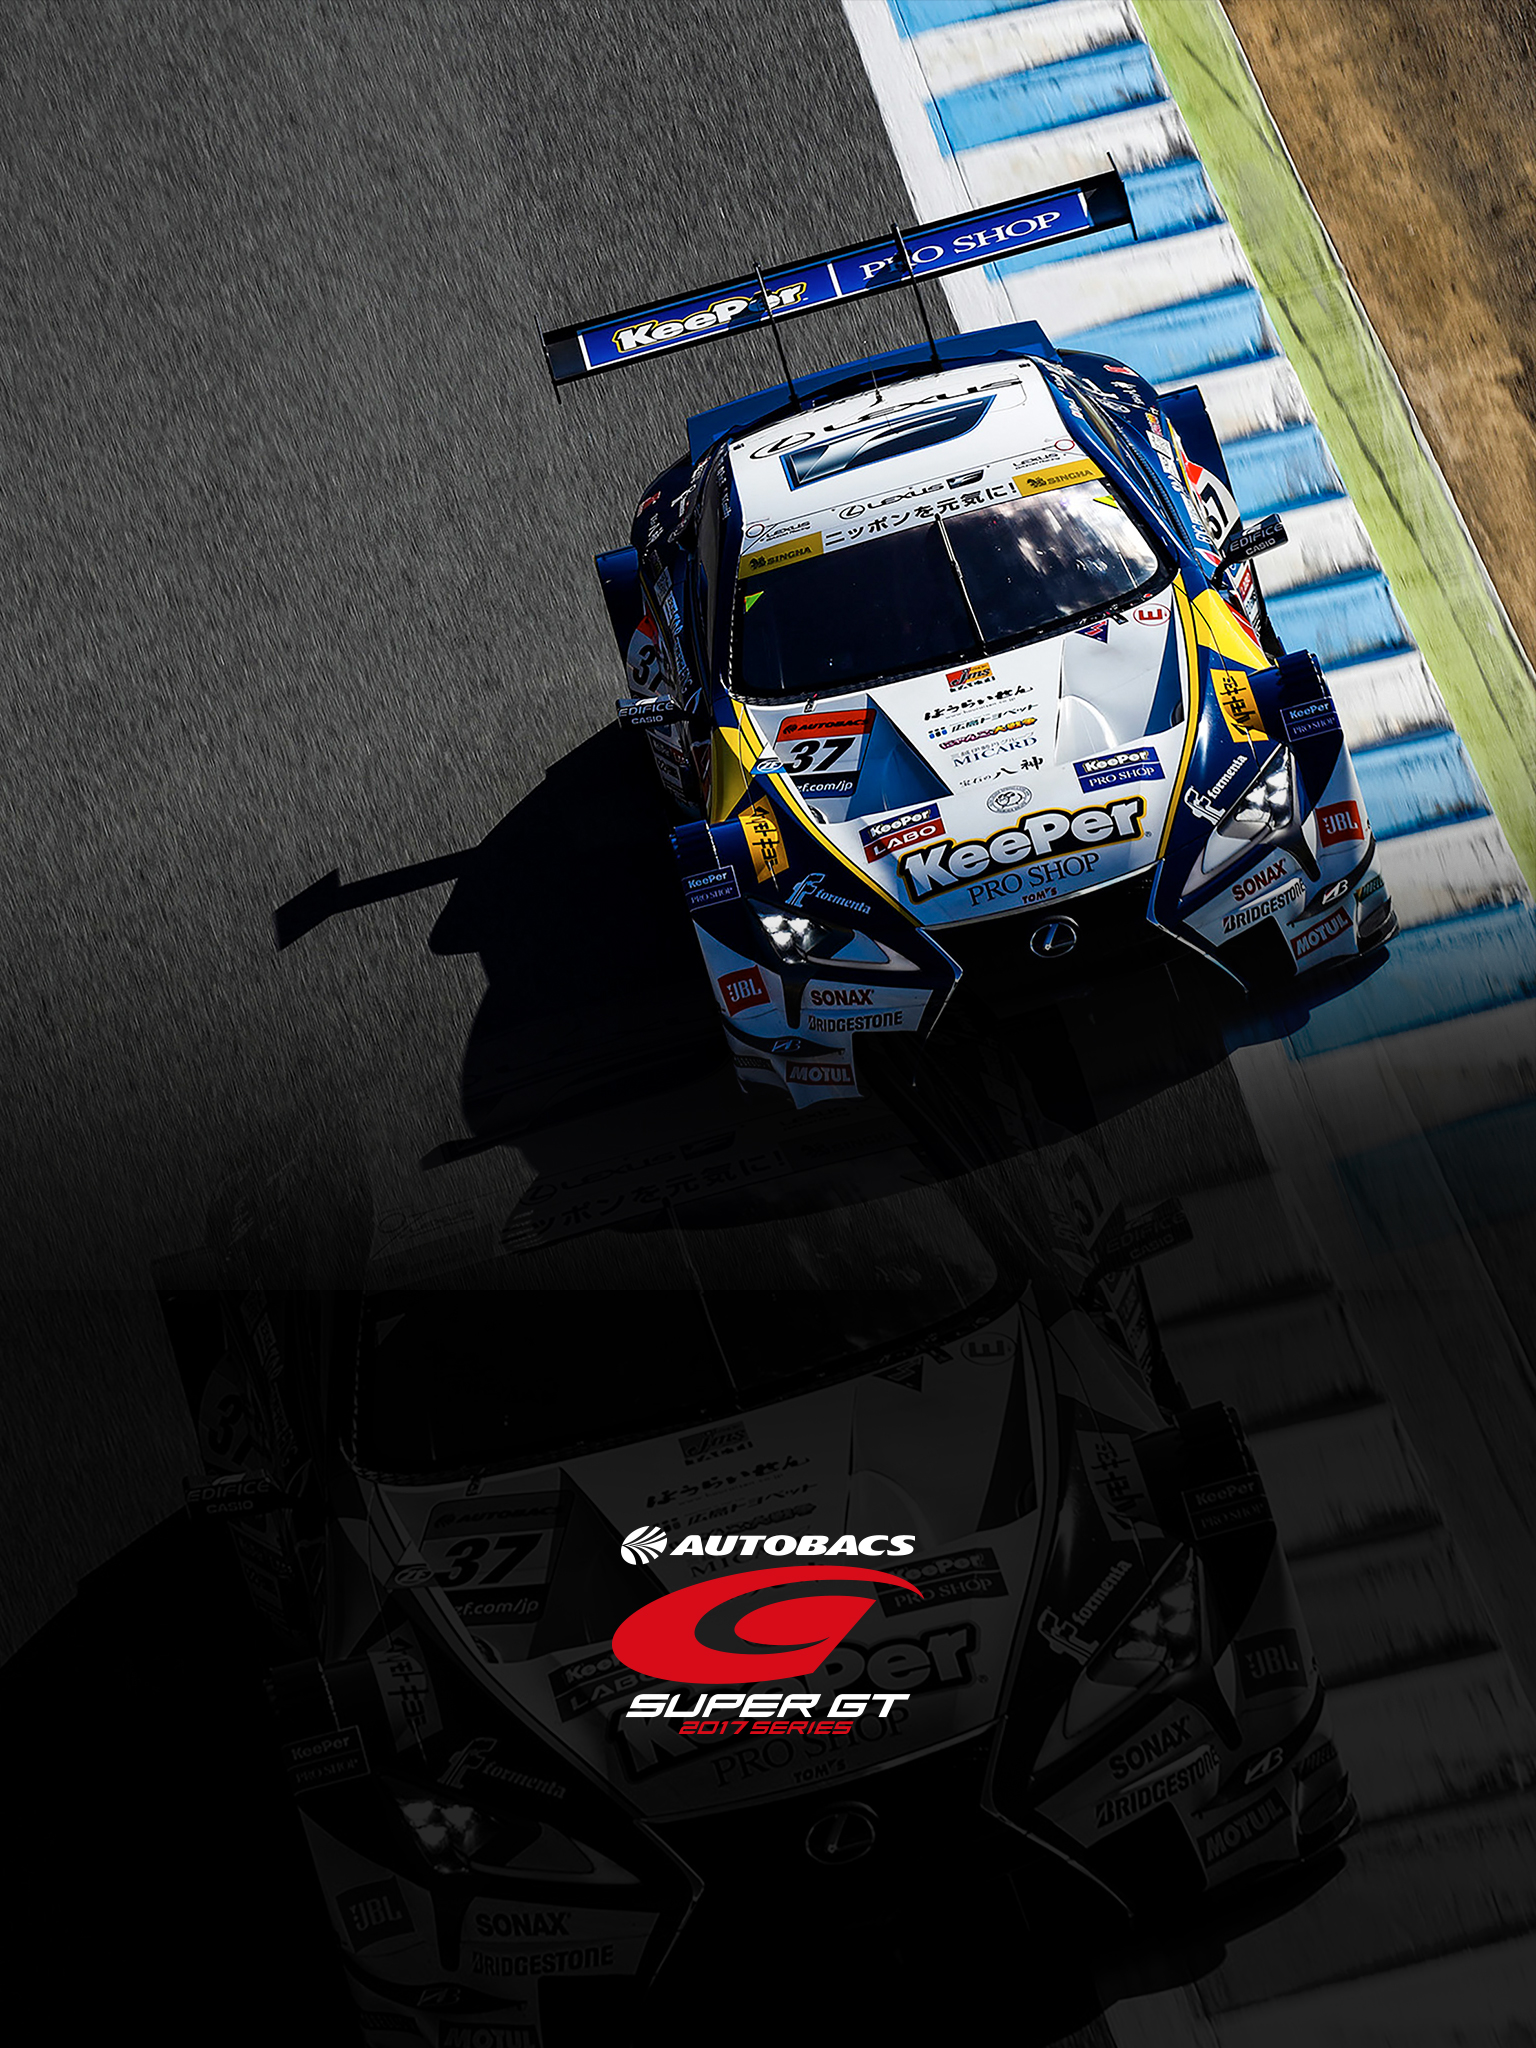 Wallpaper Rd8 Motegi Super Gt Official Website